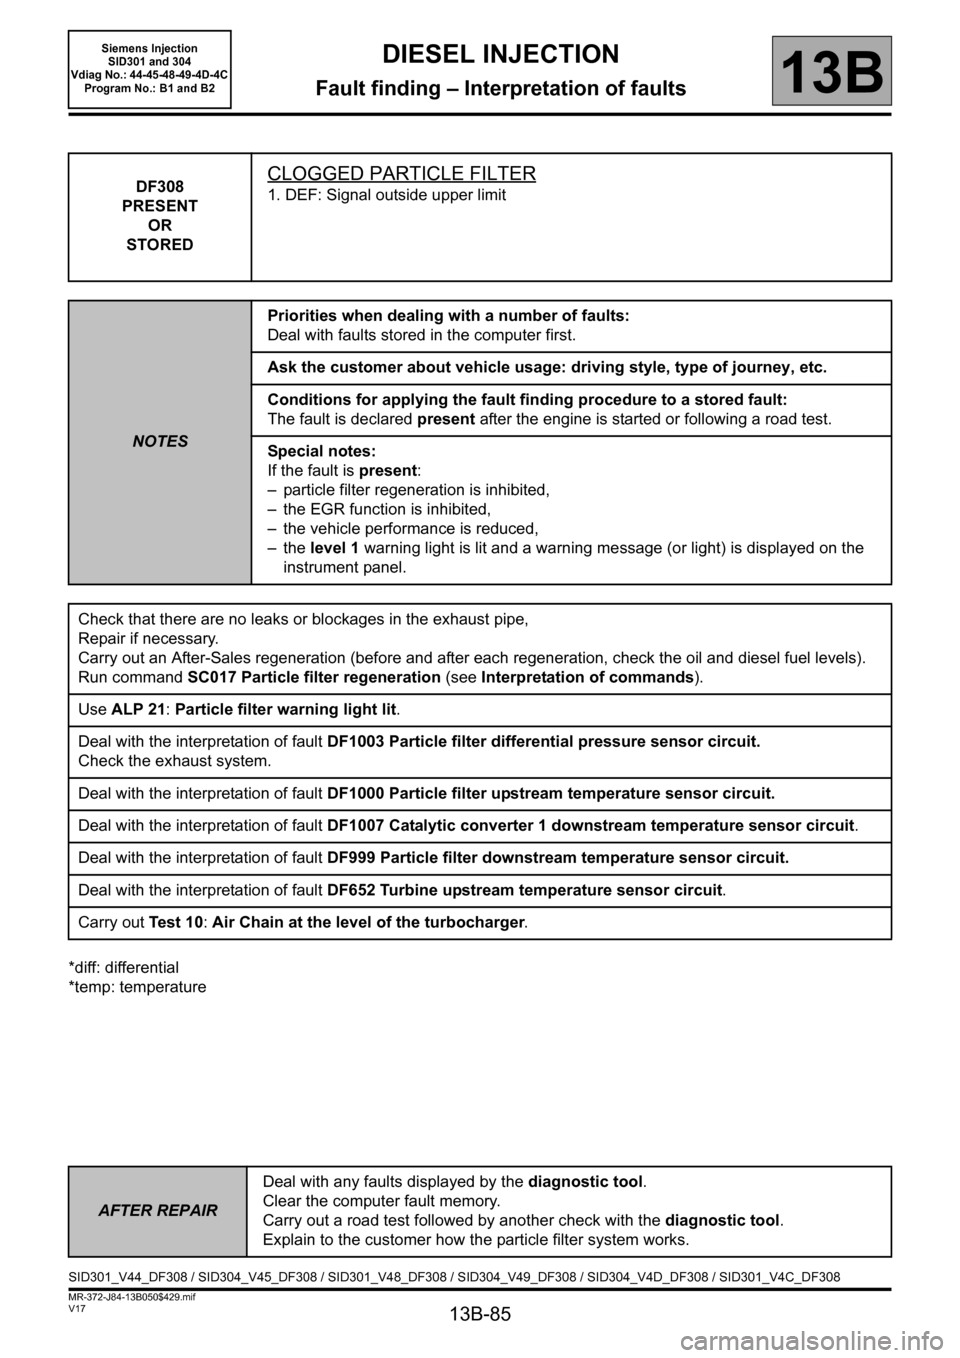 RENAULT SCENIC 2011 J95 / 3.G Engine And Peripherals Siemens Injection Workshop Manual, Page 85